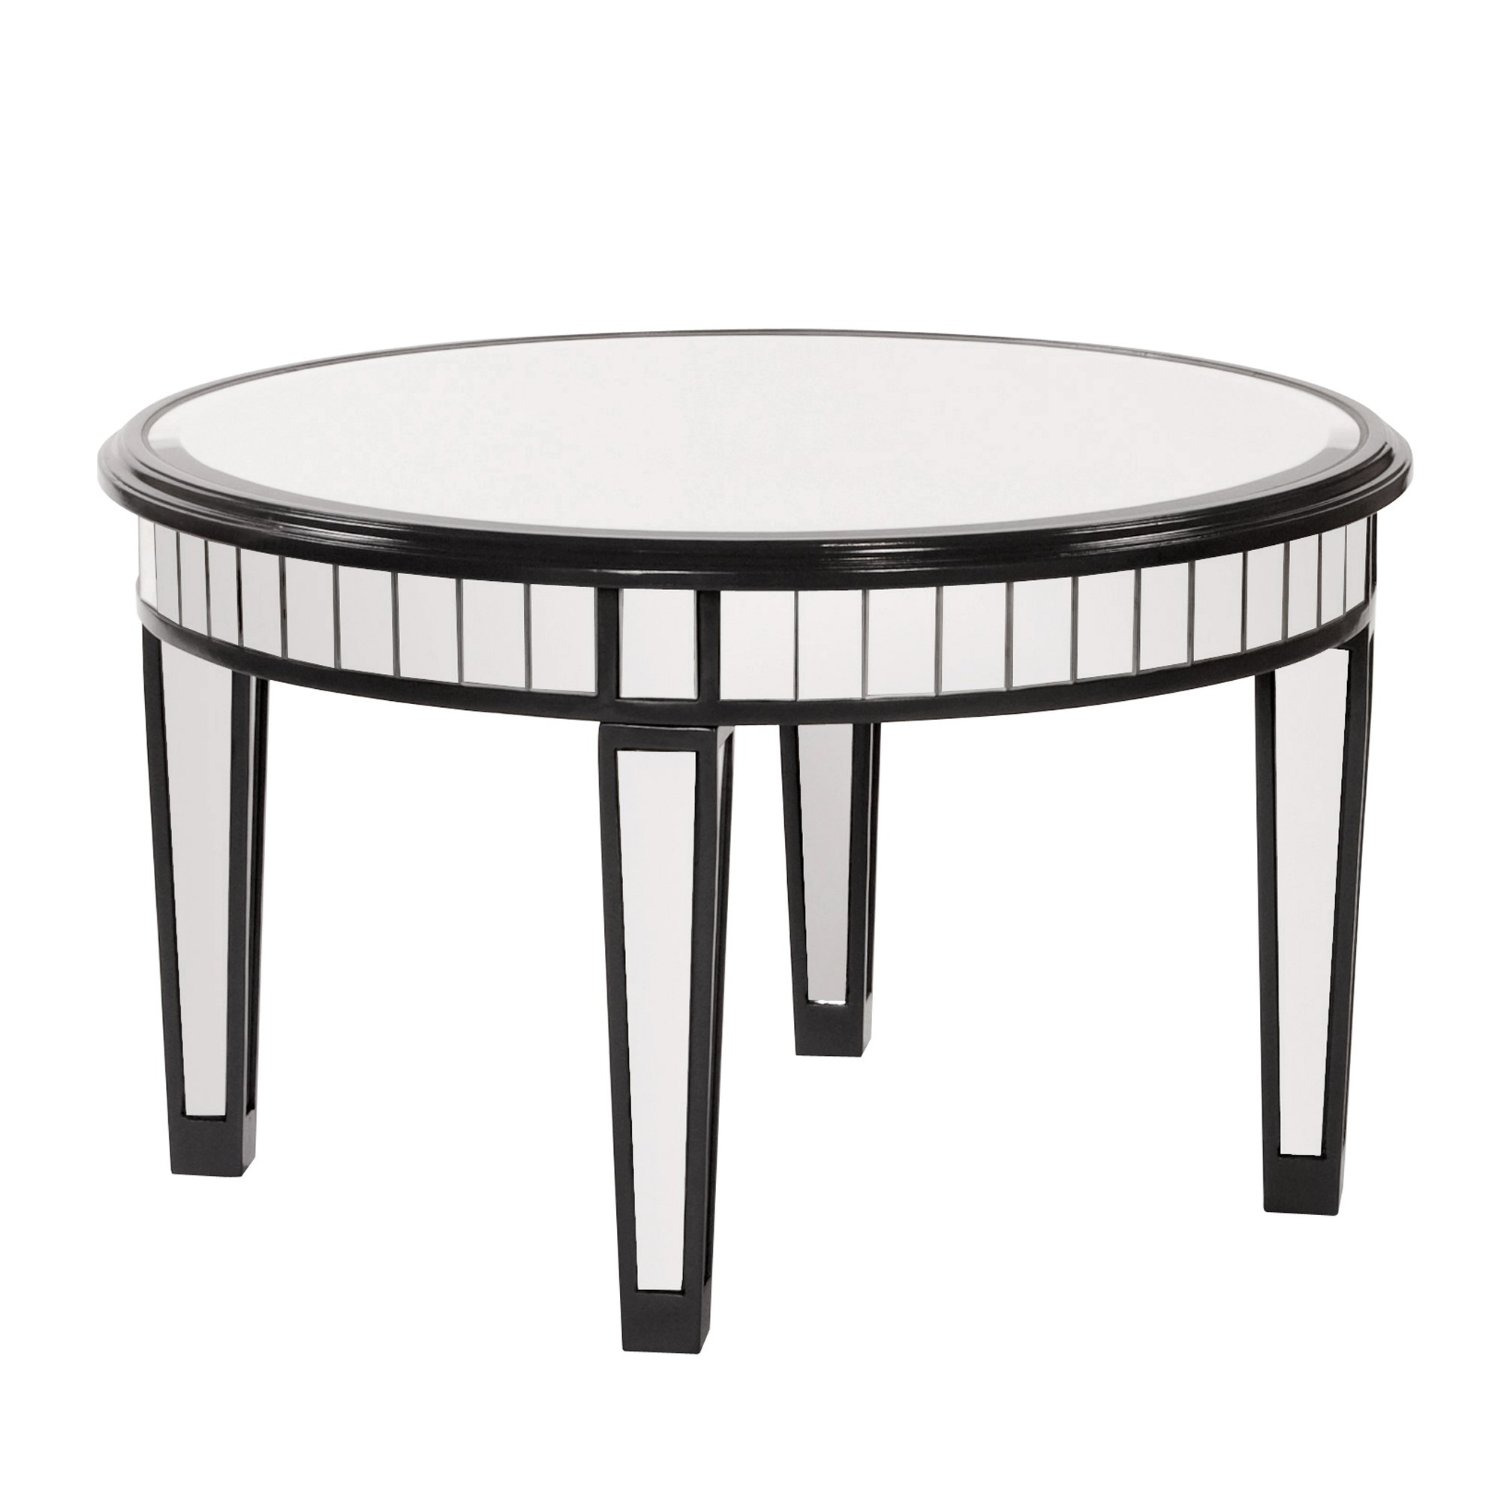 ideas mesmerizing mirrored coffee table with glass and wood chest drawers bedside accent round small garden cover treasure furniture astoria patio target cocktail telesco legs